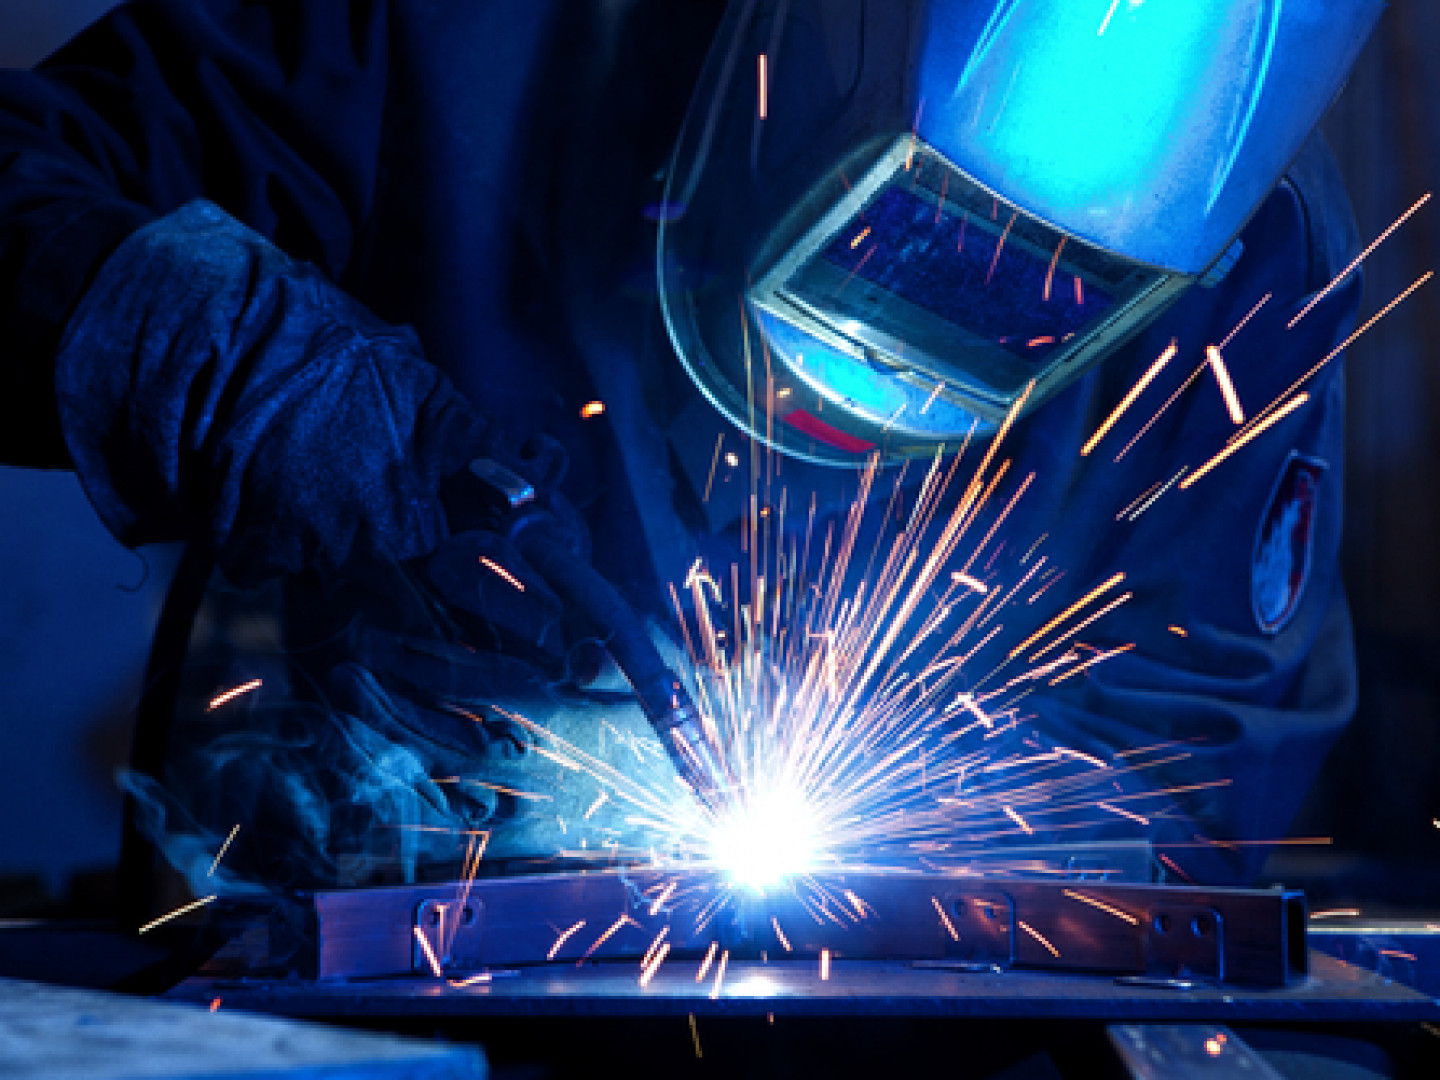 Take advantage of our custom welding and fabrication services